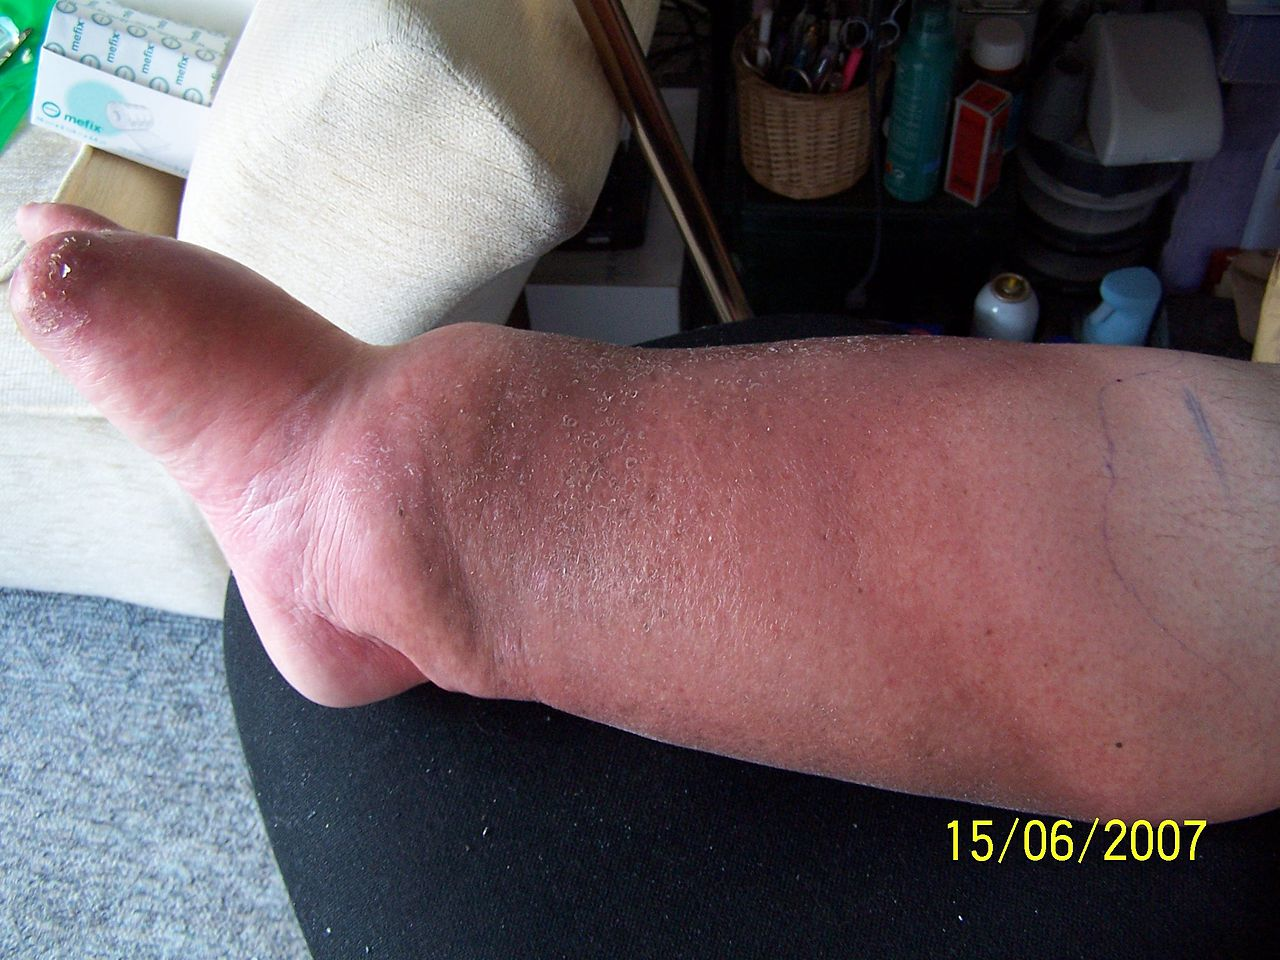 File:My leg with cellulitis and oedema.jpg - Wikimedia Commons